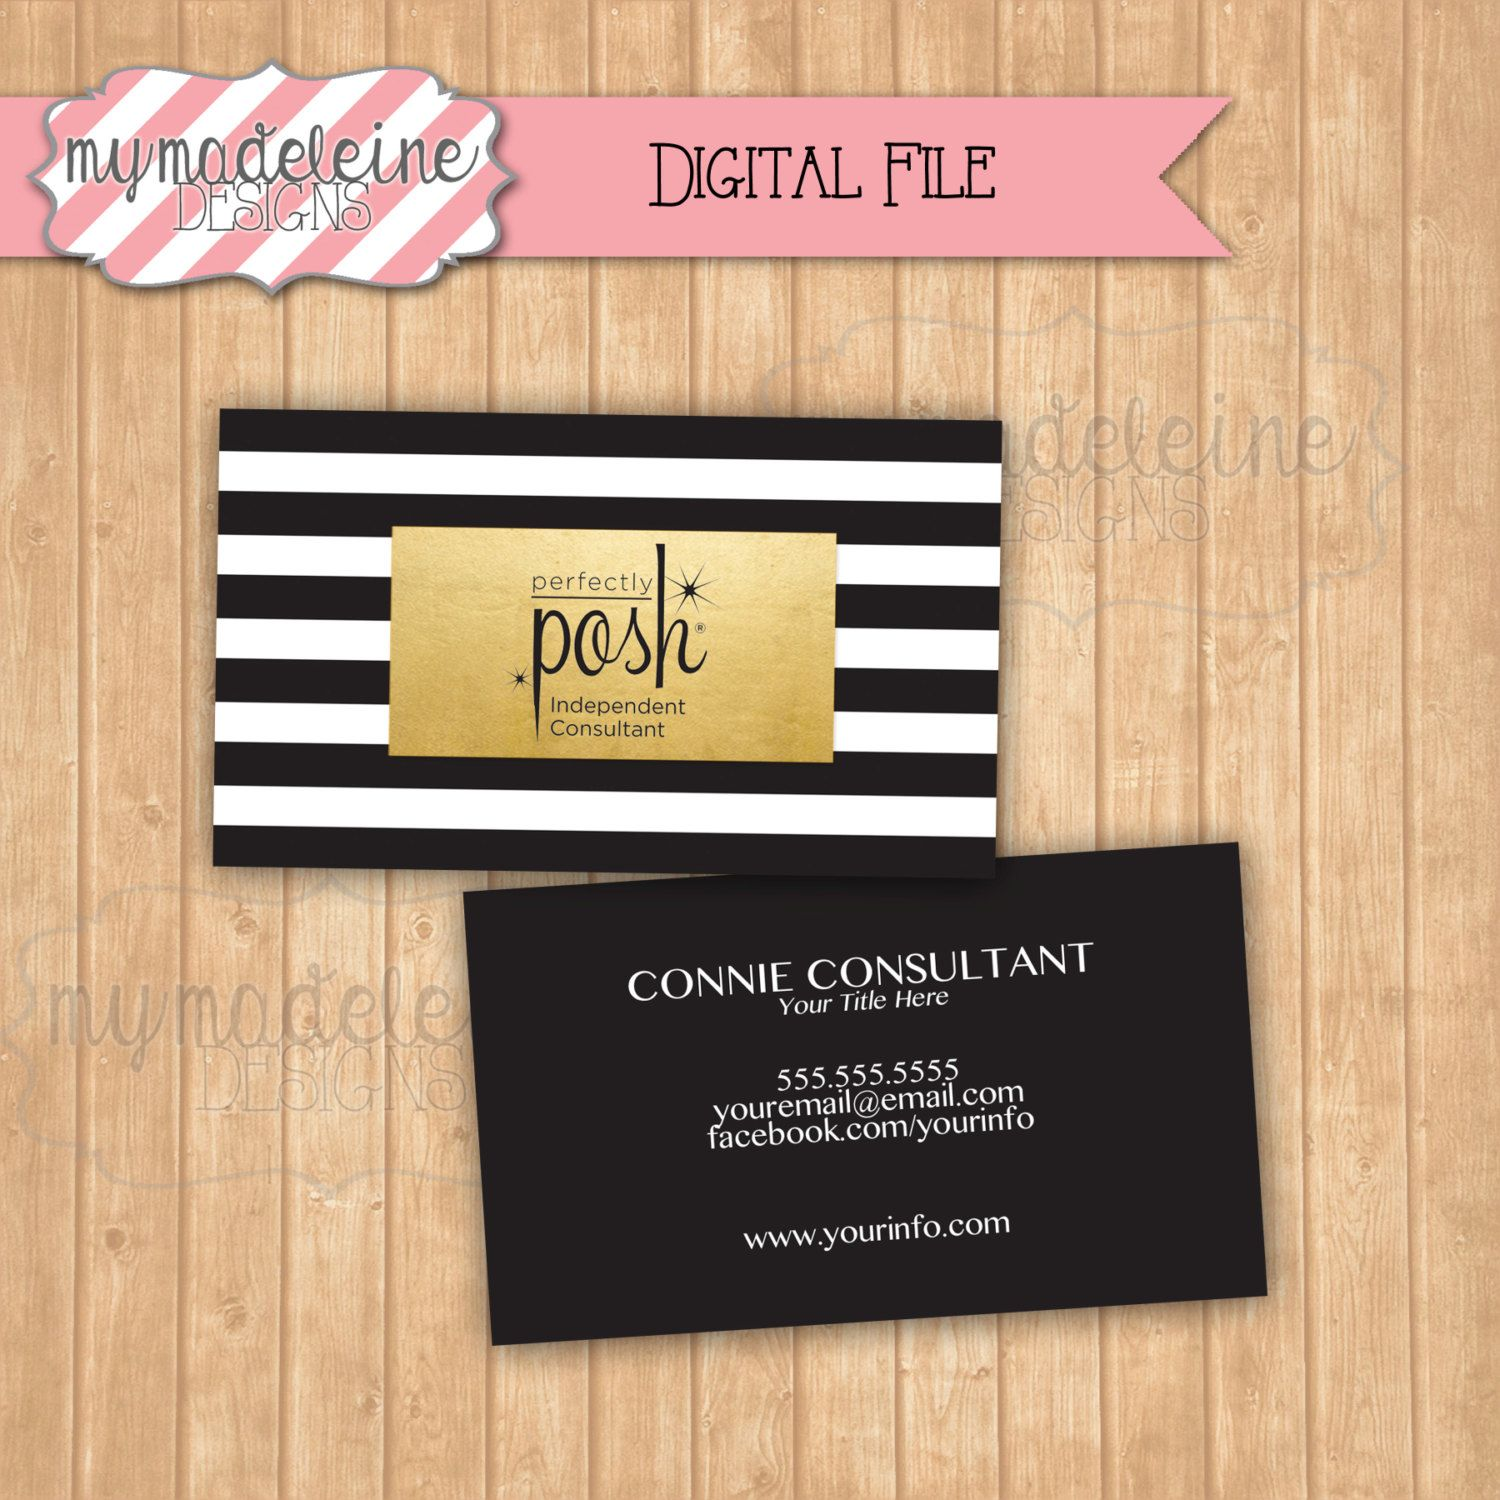 Perfectly Posh Business Card Marketing Materials Direct Sales ...